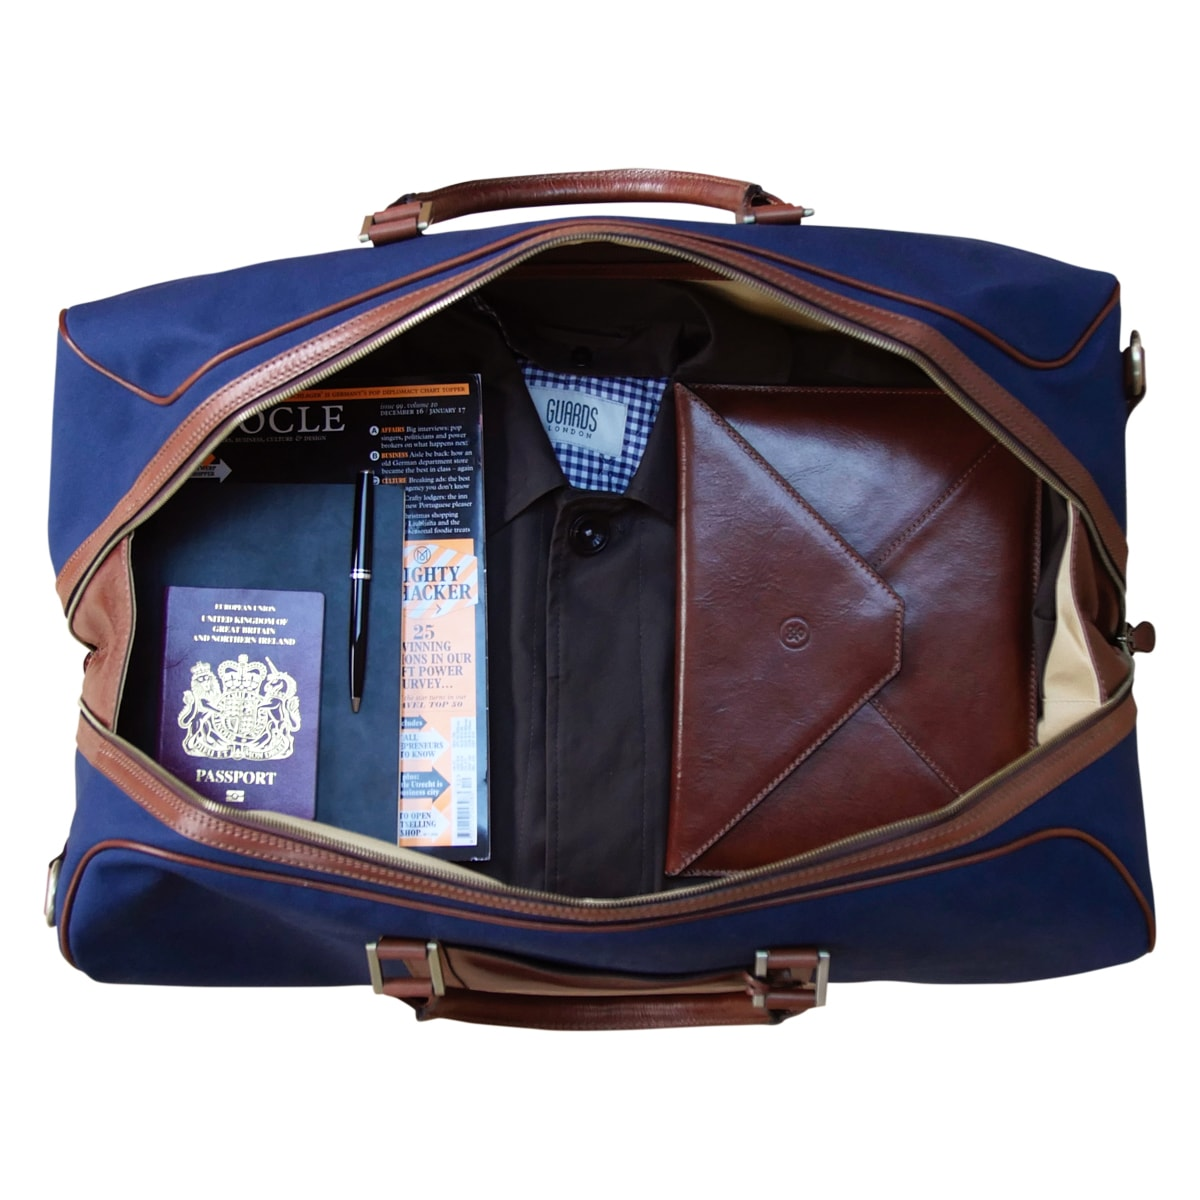 Image 7 of the 'Giovane' Rich Navy and Tan Holdall